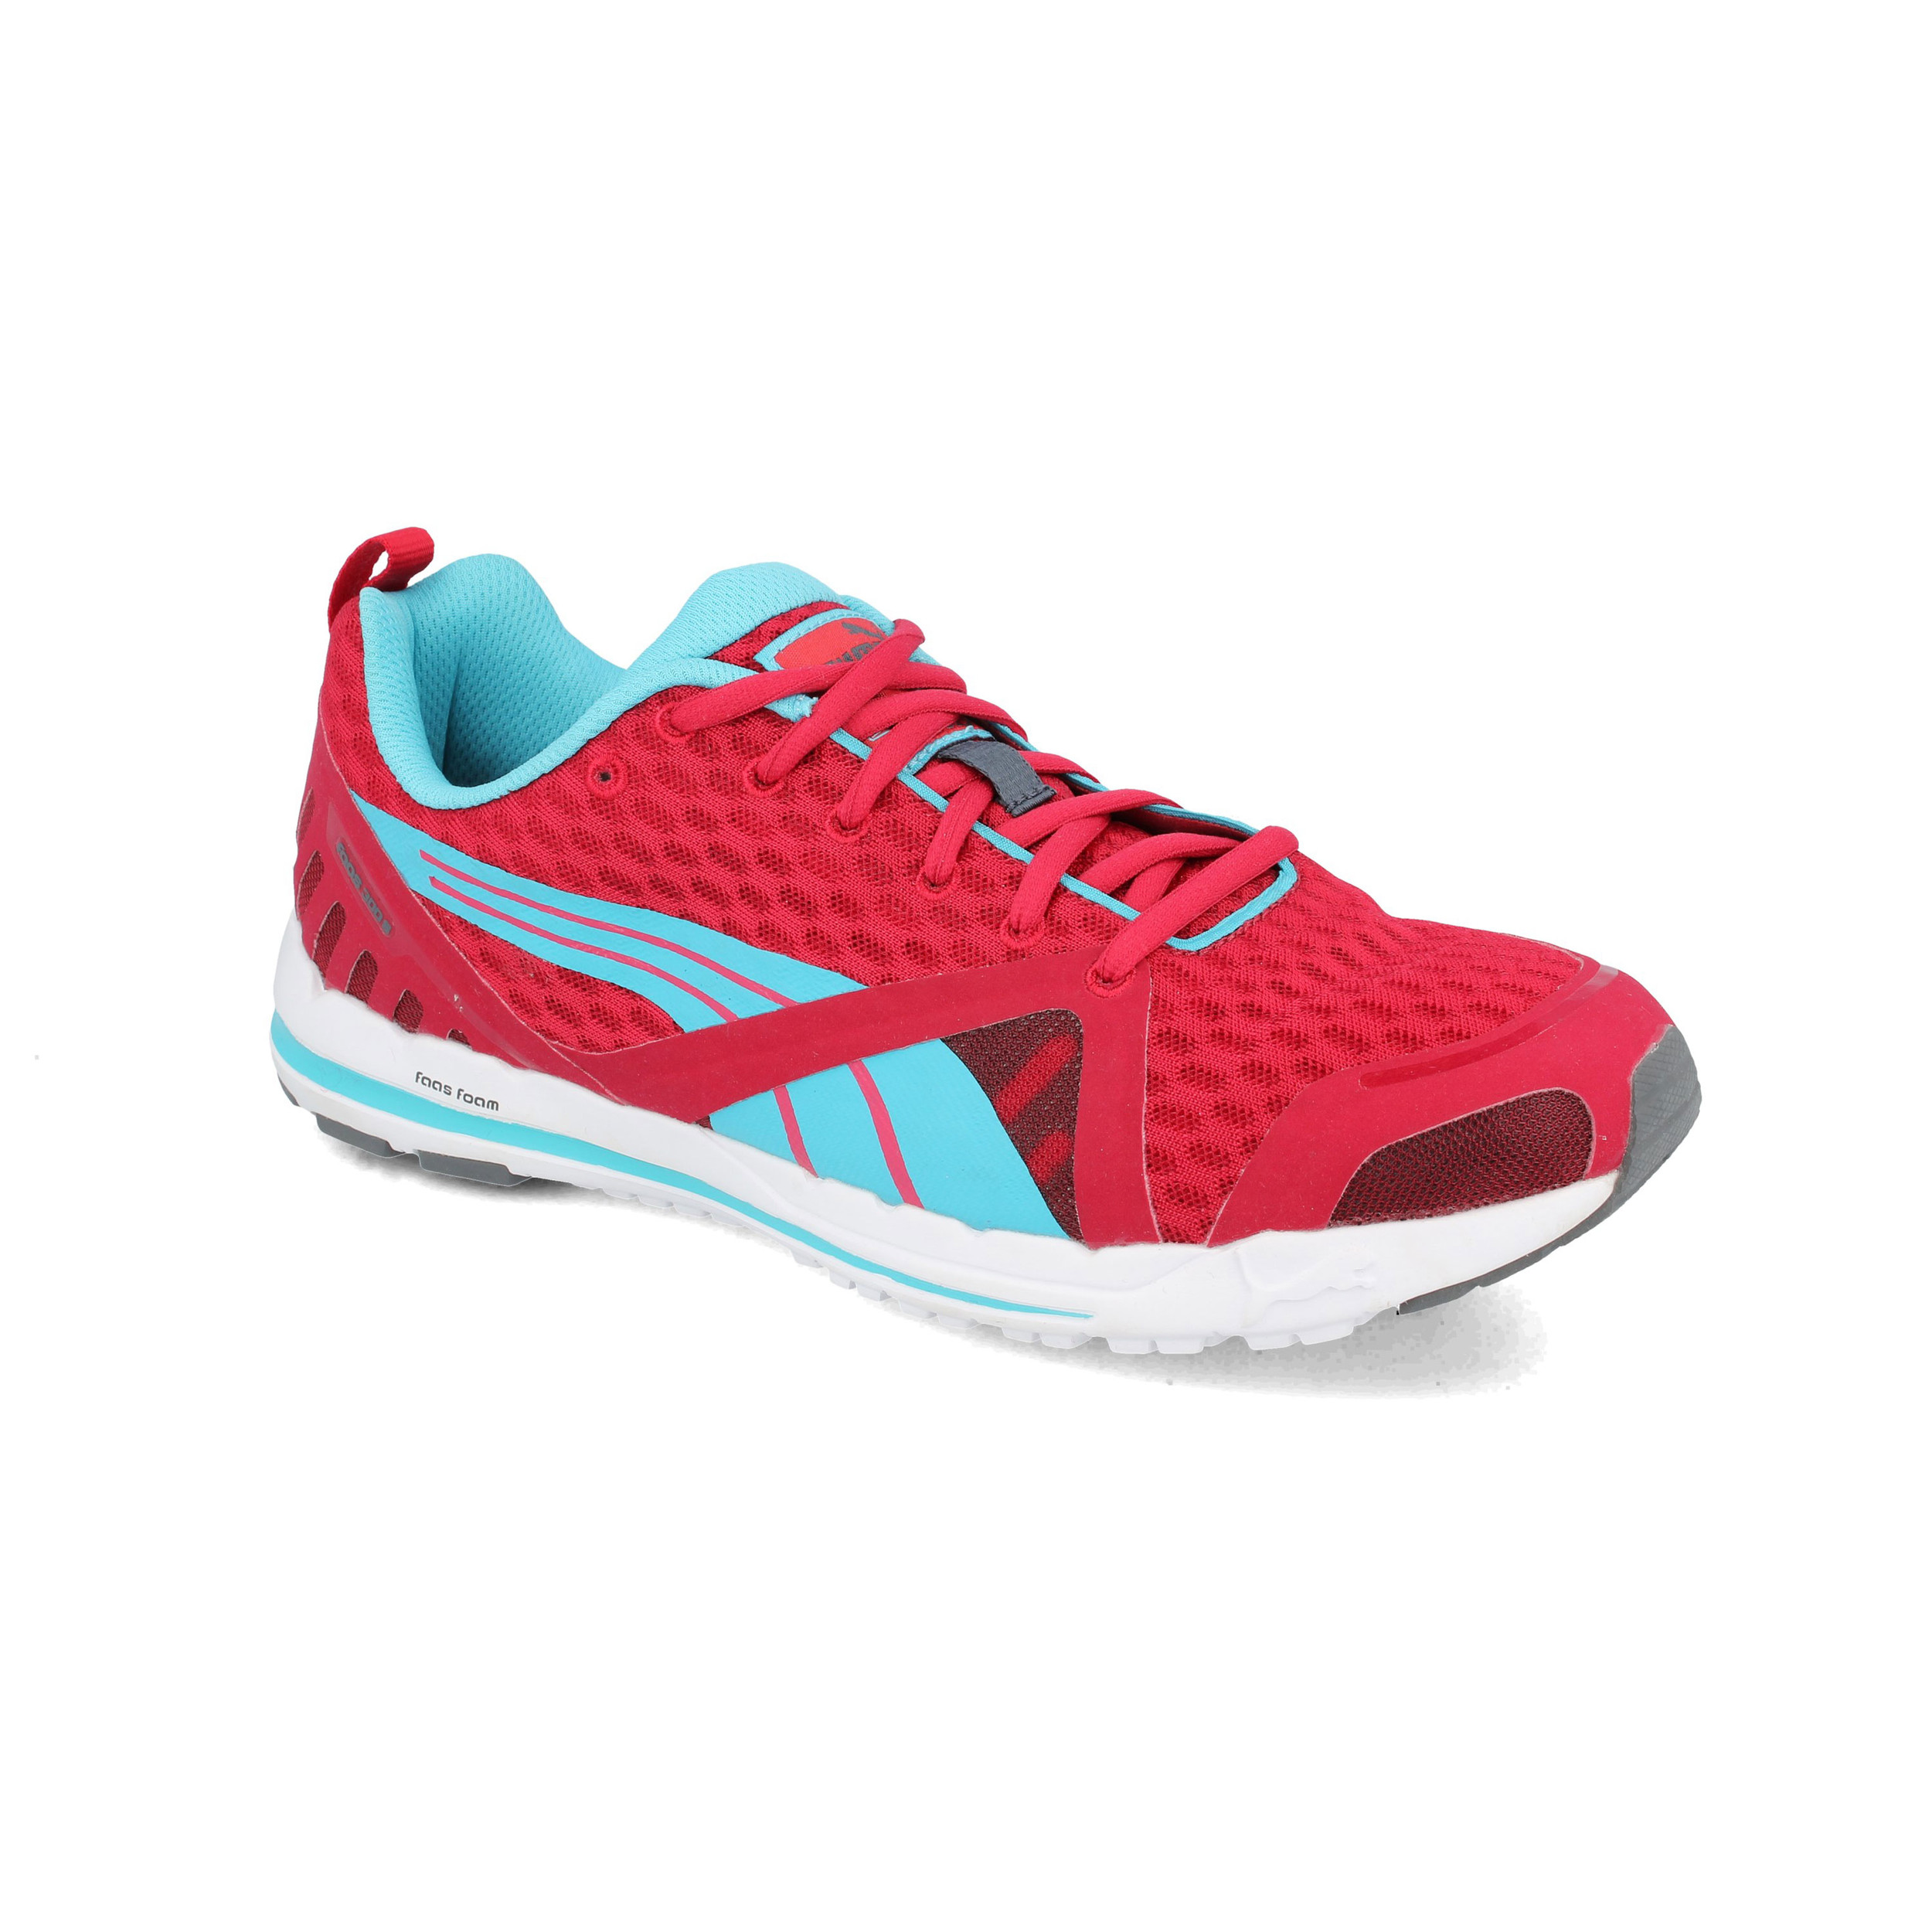 39d8a1b1dc86 Puma Mens Faas 300 S Running Shoes Trainers Sneakers Red Sports Breathable